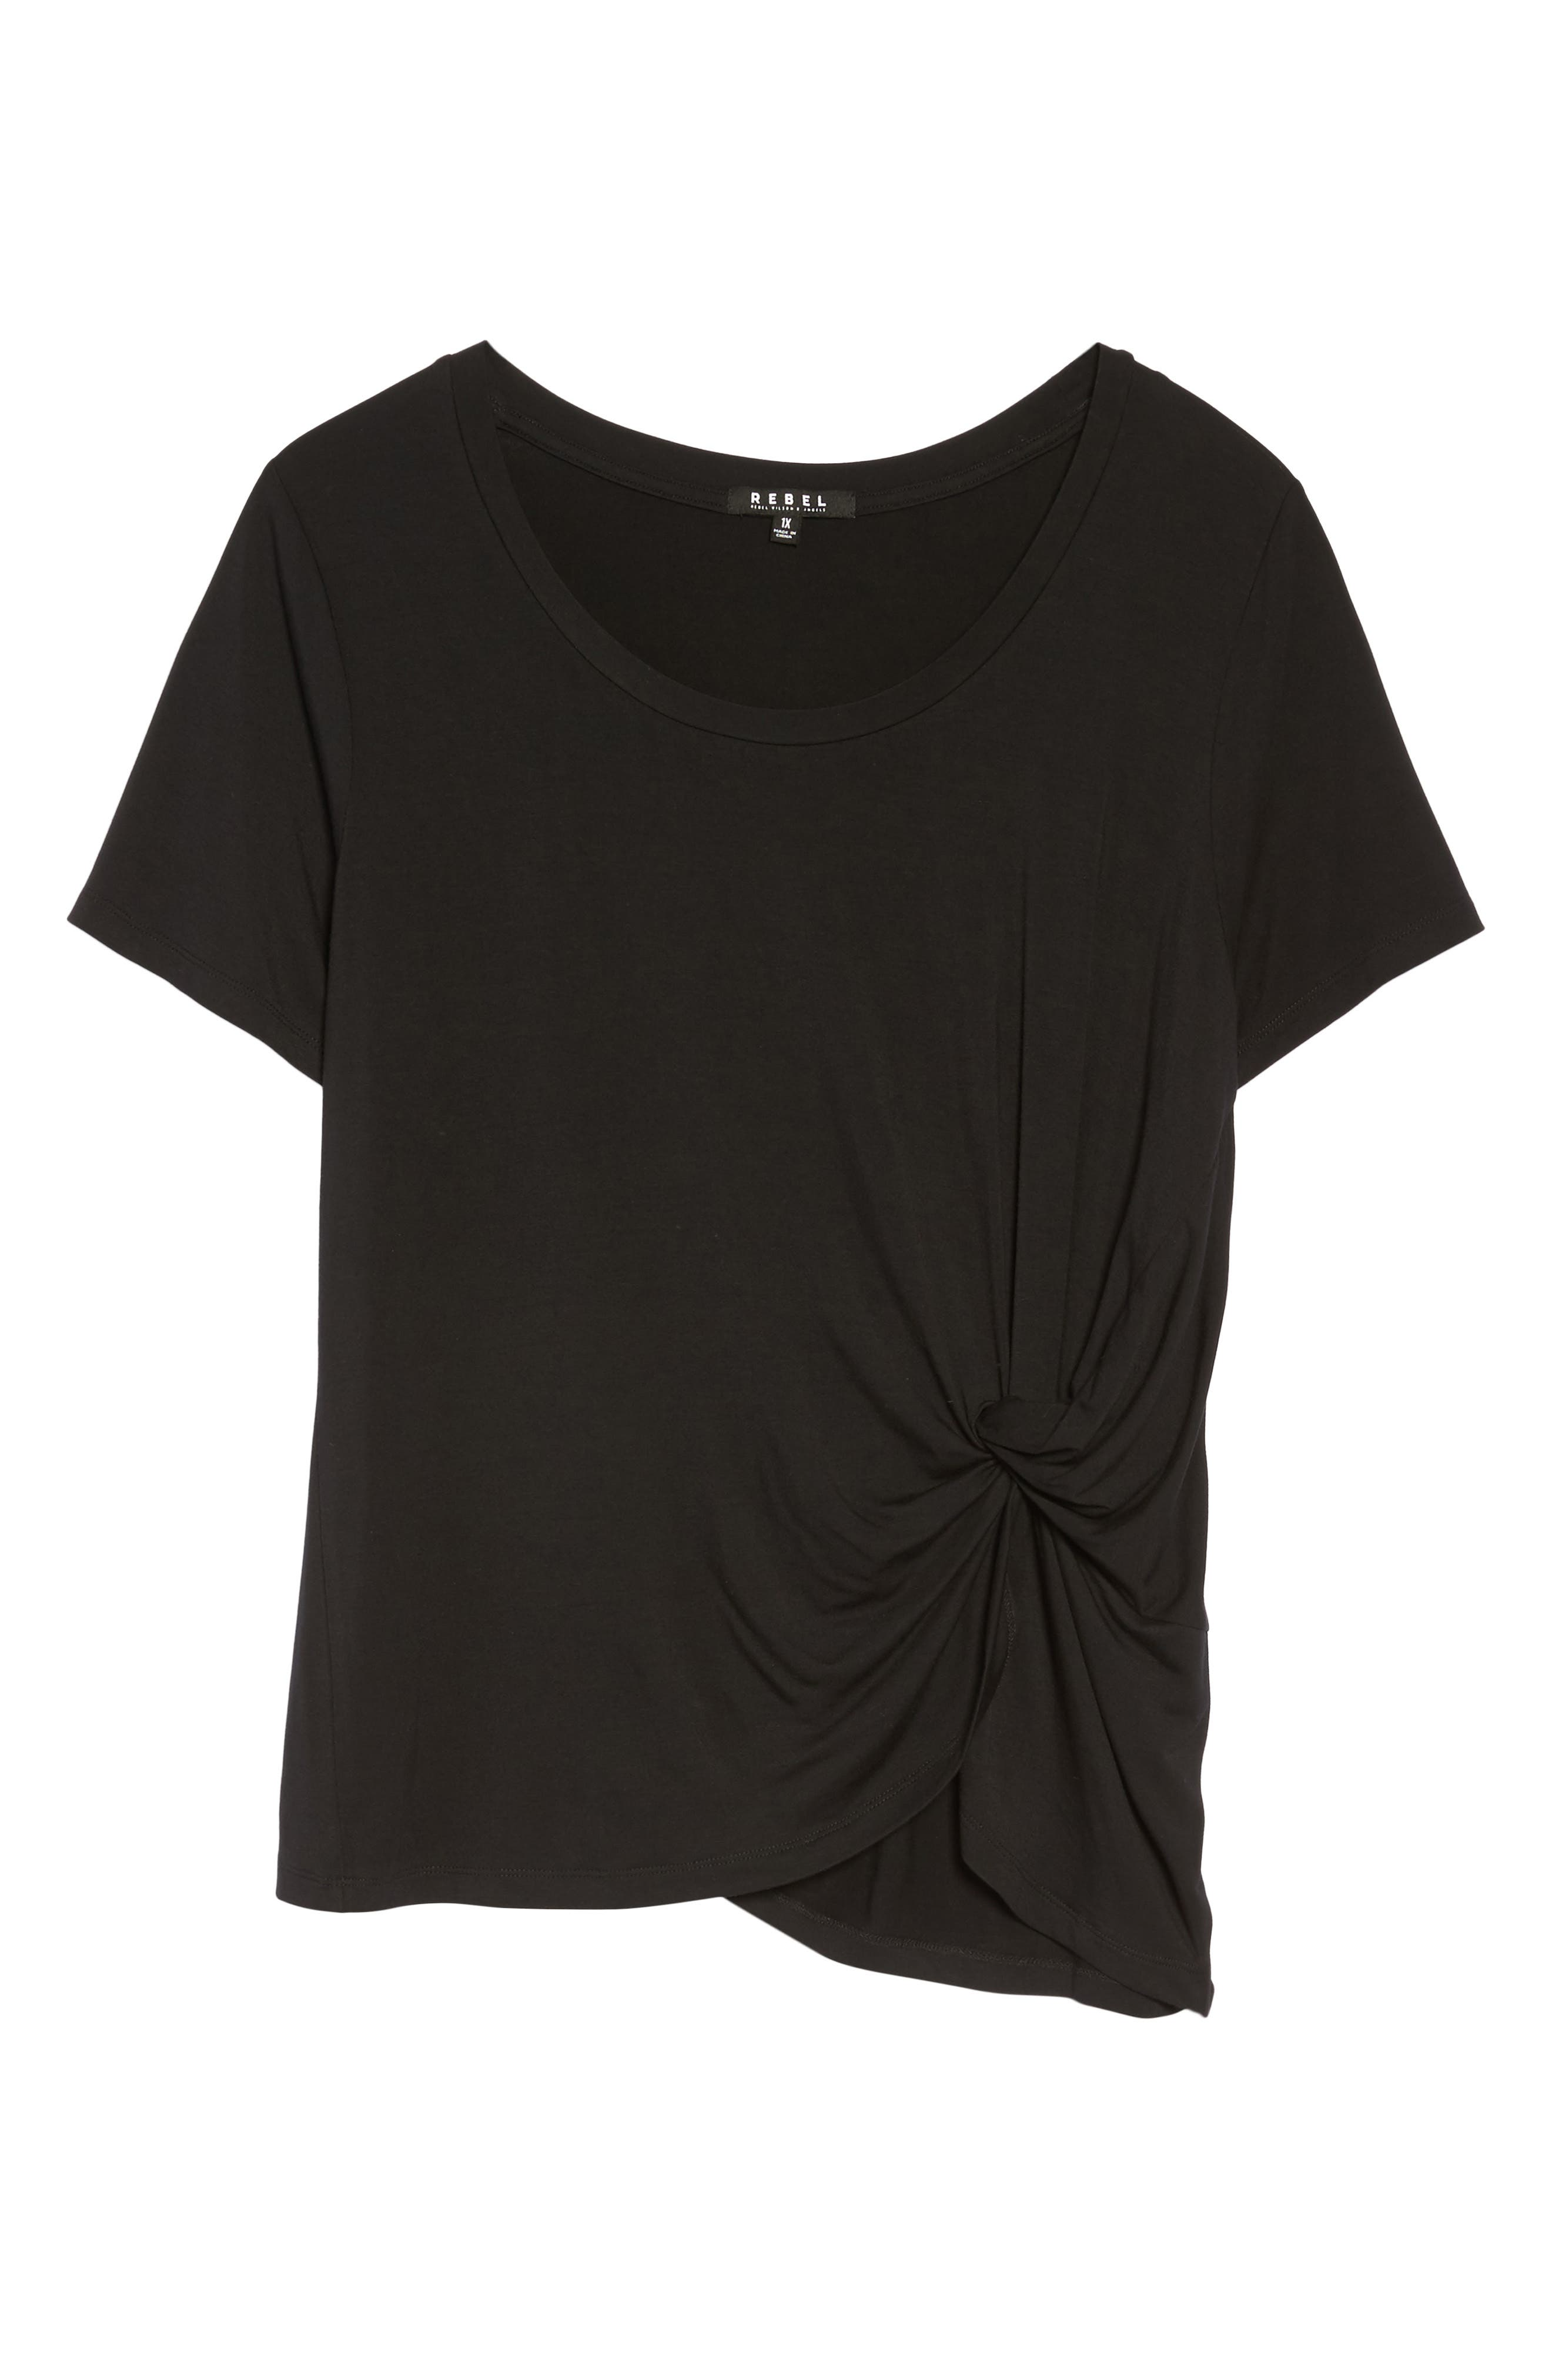 Ruched Top,                             Alternate thumbnail 6, color,                             002